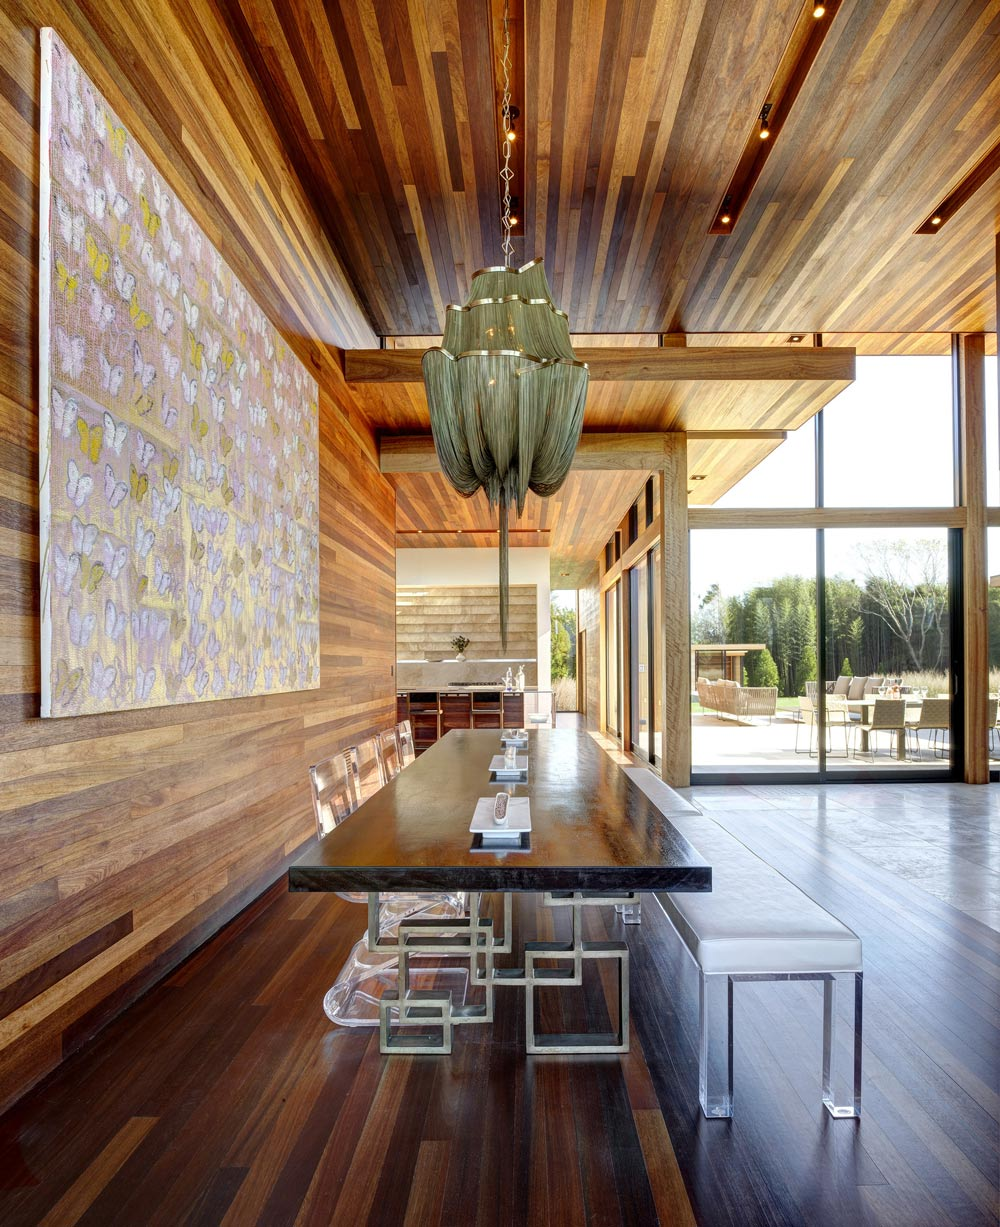 Dining Table, Acrylic Chairs, Sam's Creek in Bridgehampton, New York by Bates Masi Architects